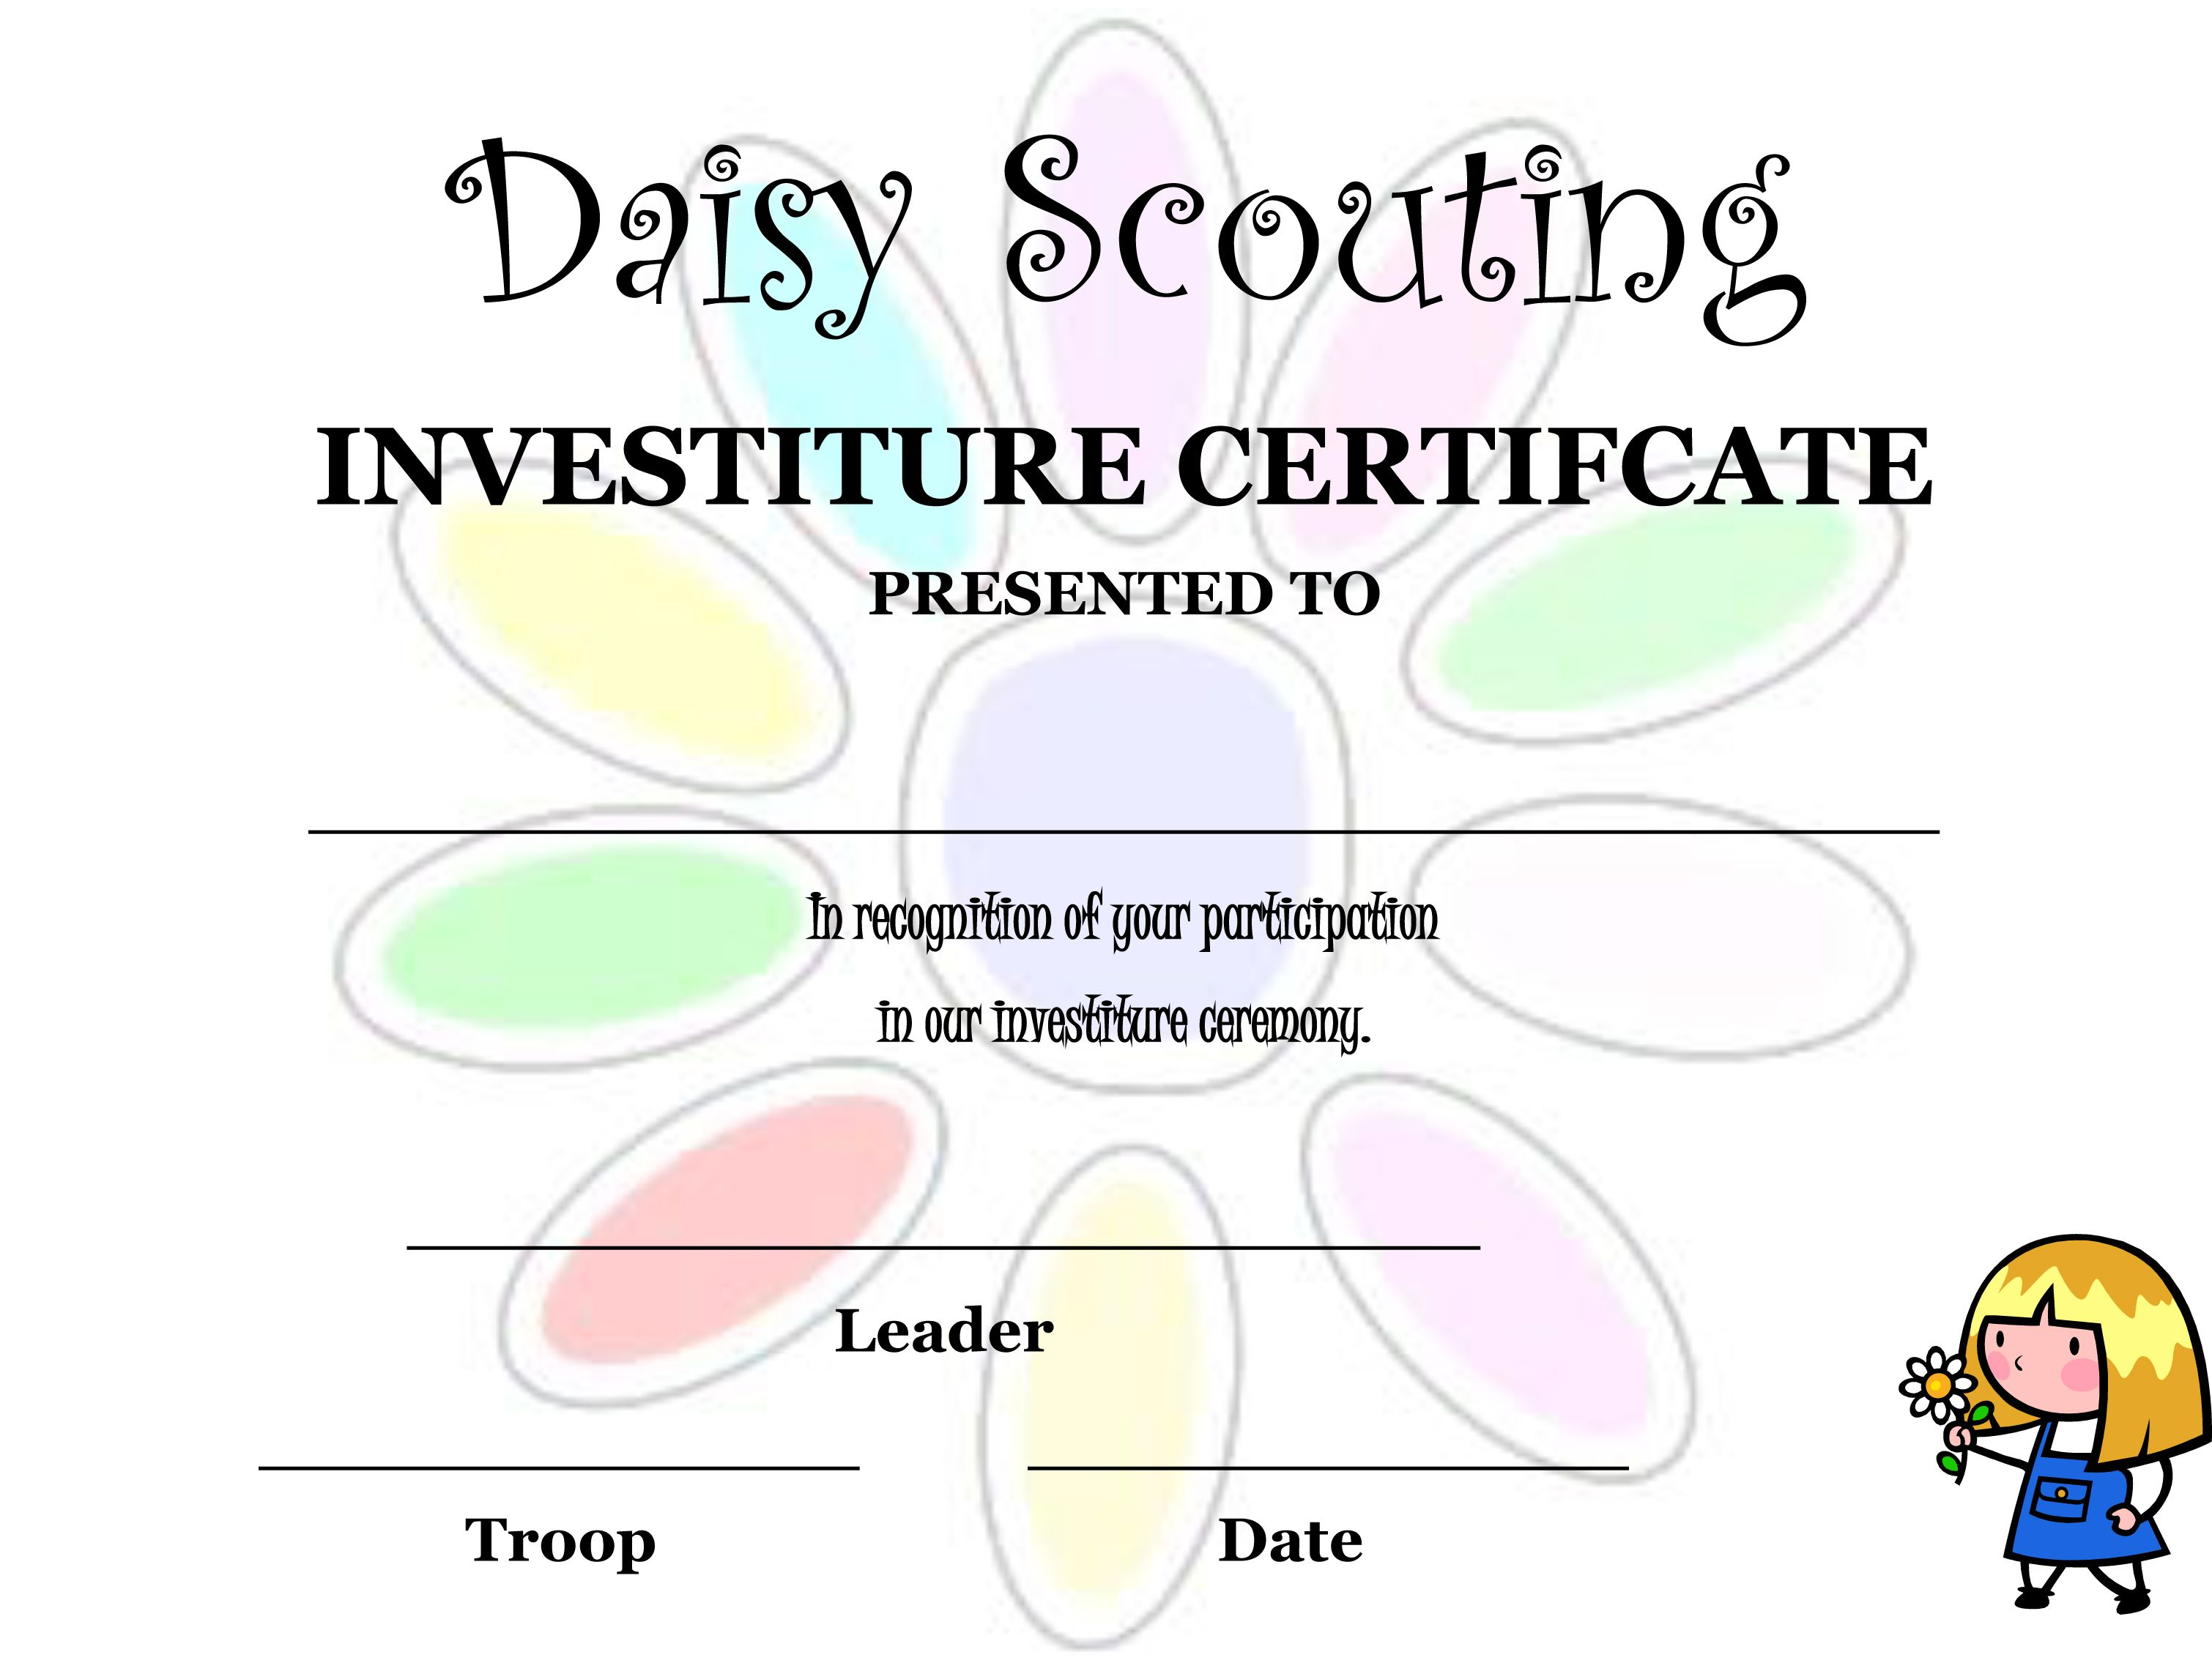 Daisy Investiture Ceremony Invitation   Invitation Templates  Ceremony Invitation Template